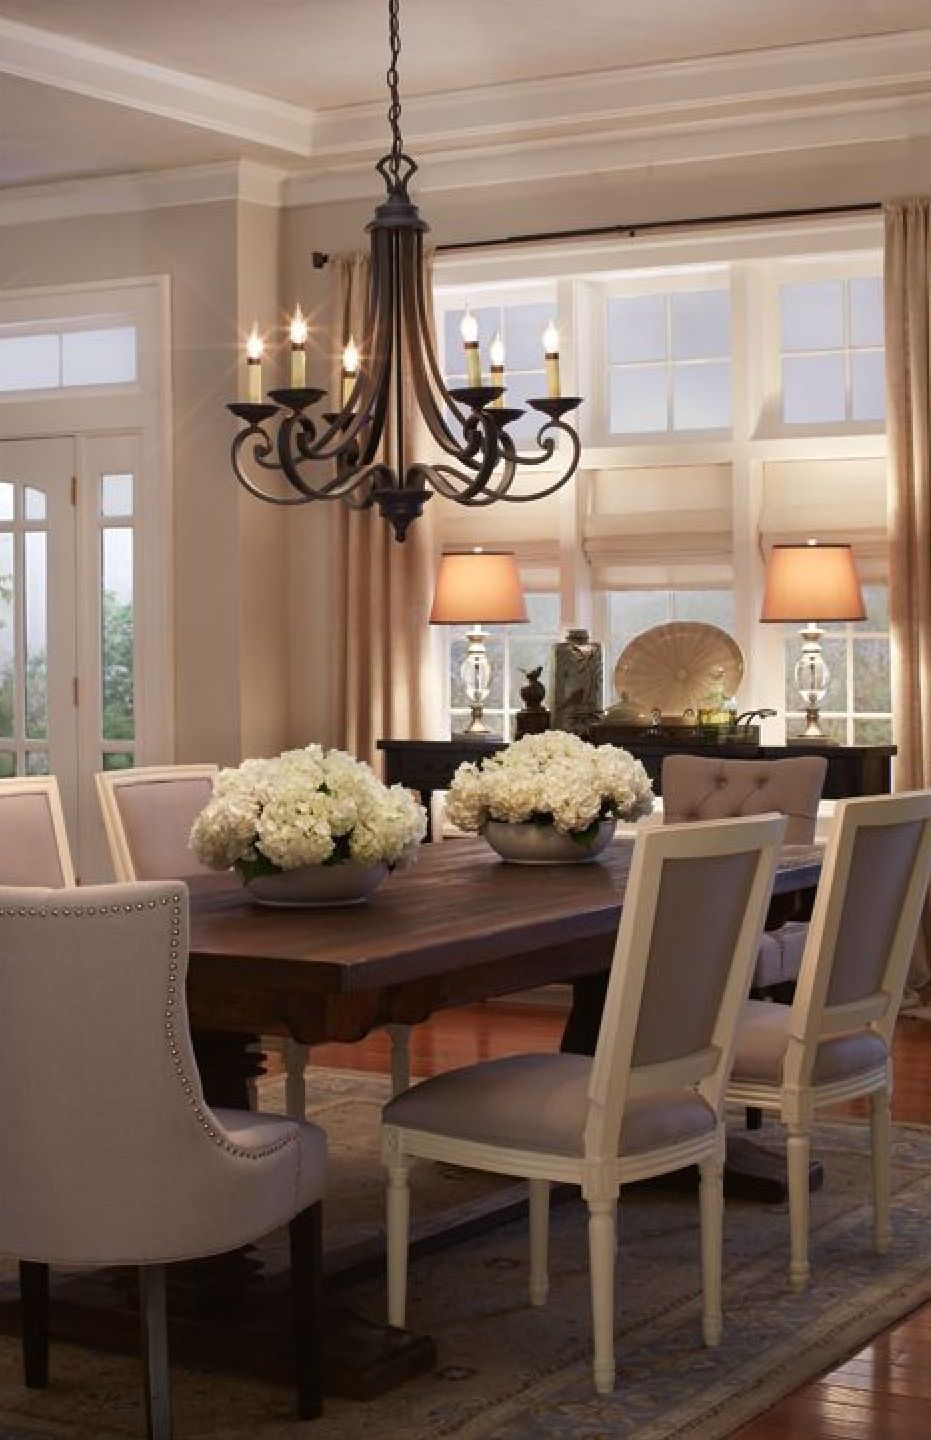 #diningroom Tables, Chairs, Chandeliers, Pendant Light, Ceiling Design,  Wallpaper,